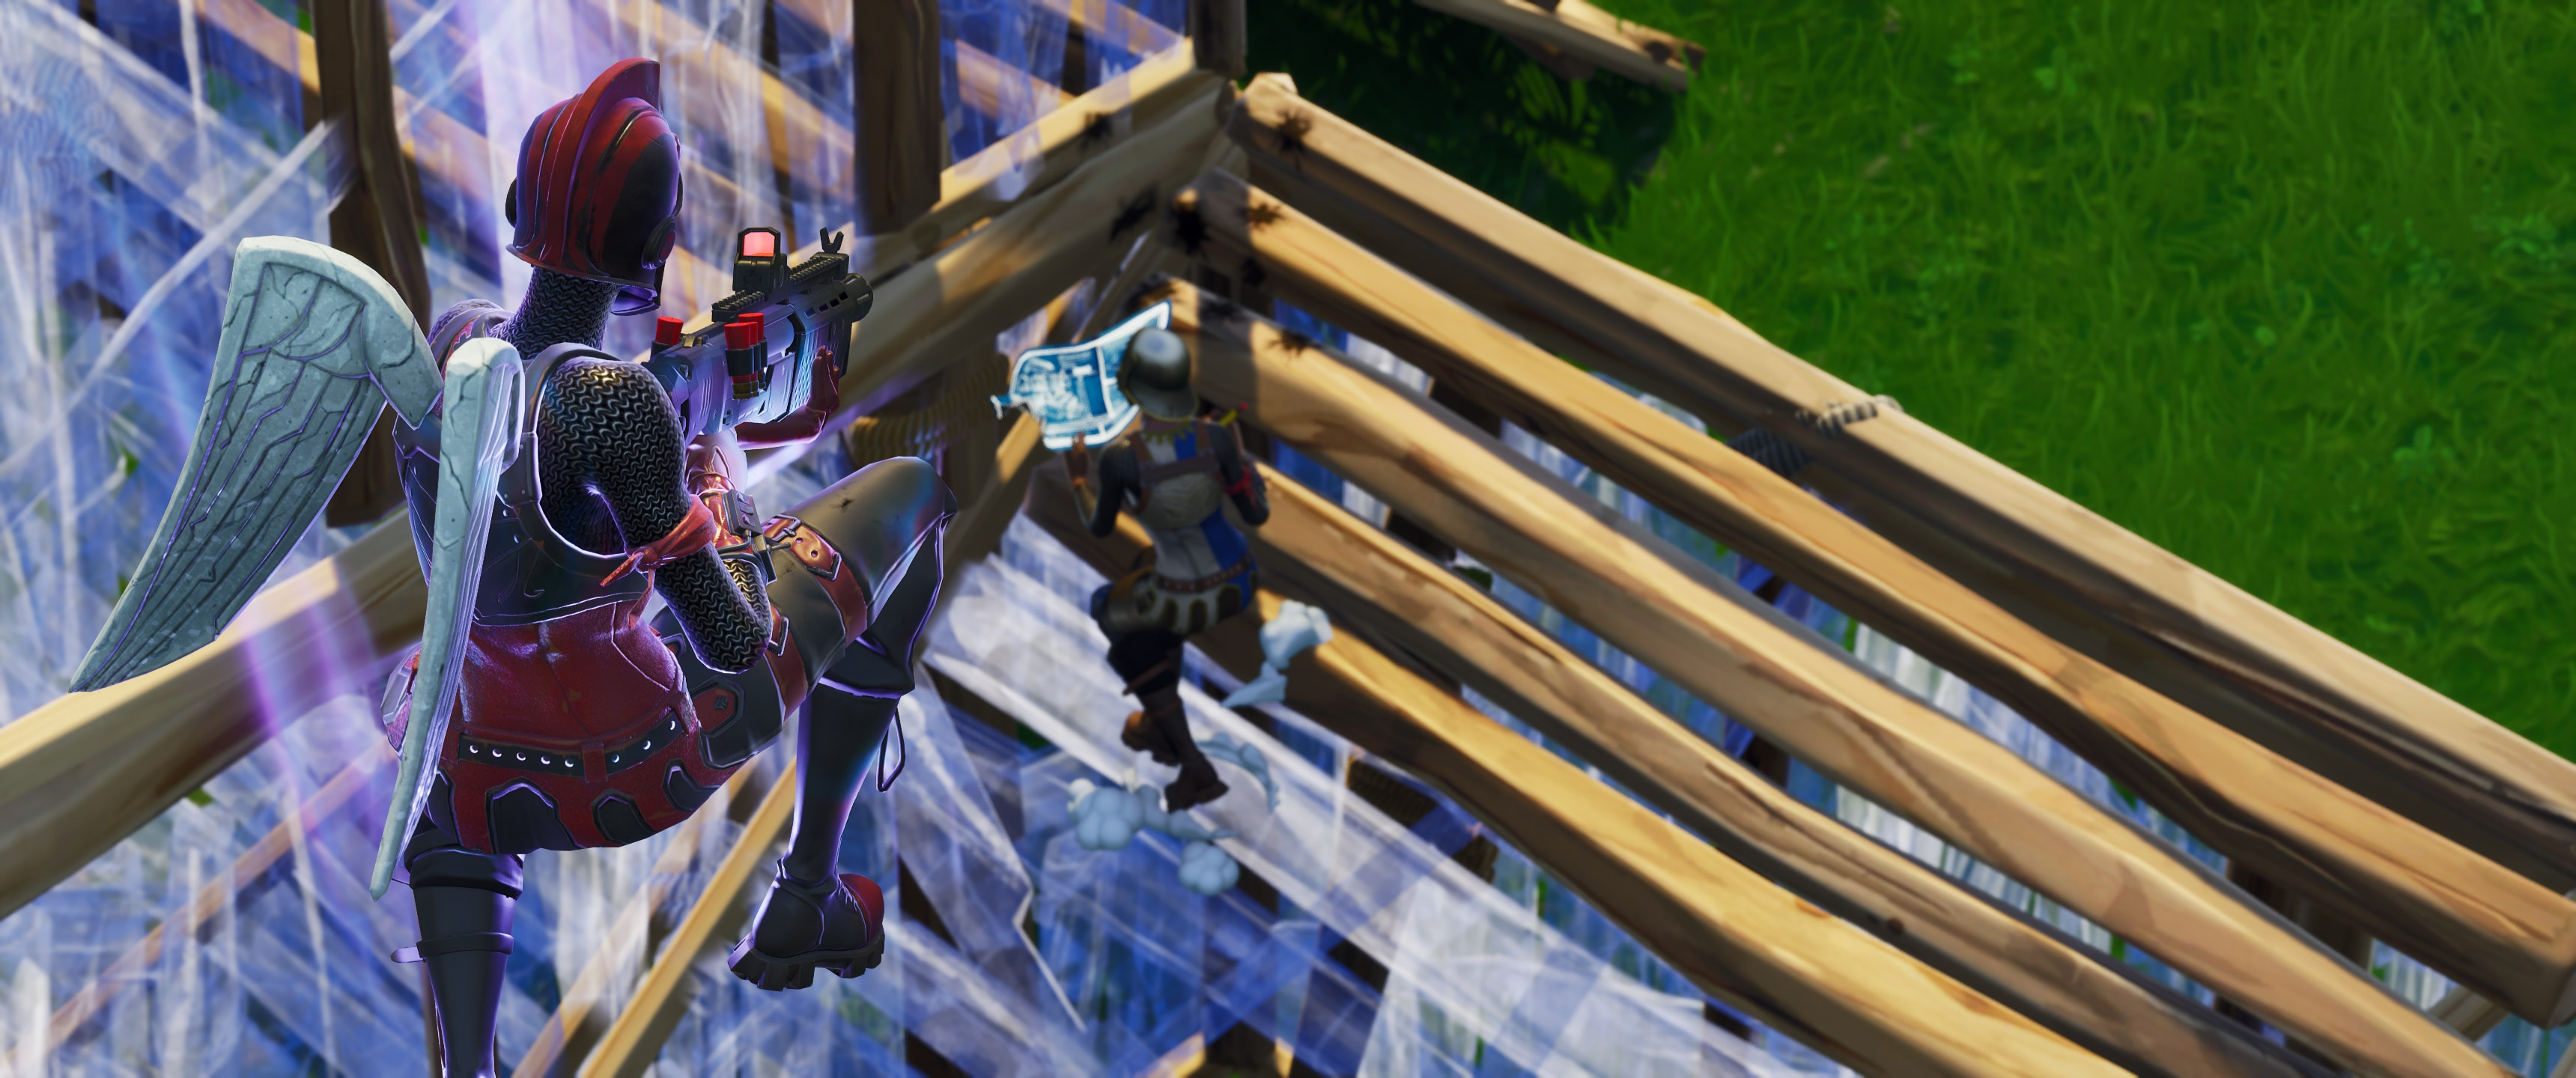 Free Stock Photo Of Fortnite Video Games